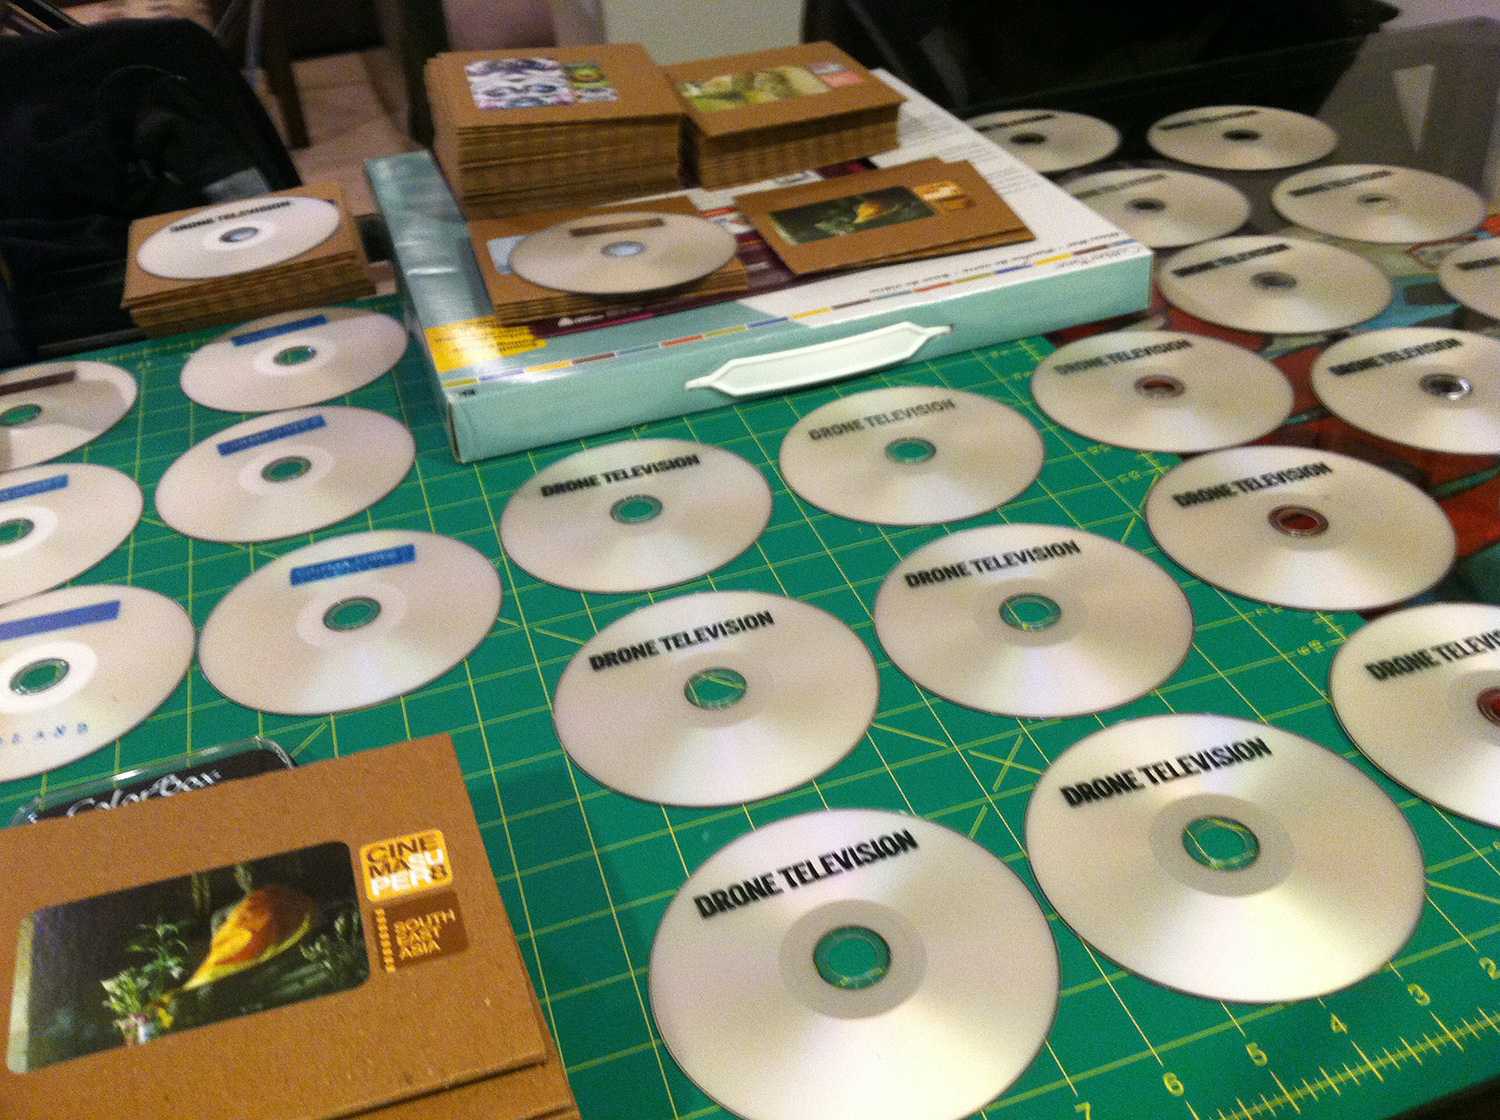 The DVD production line for Drone TV and Cinema Super 8; hand-stamped DVDs drying.